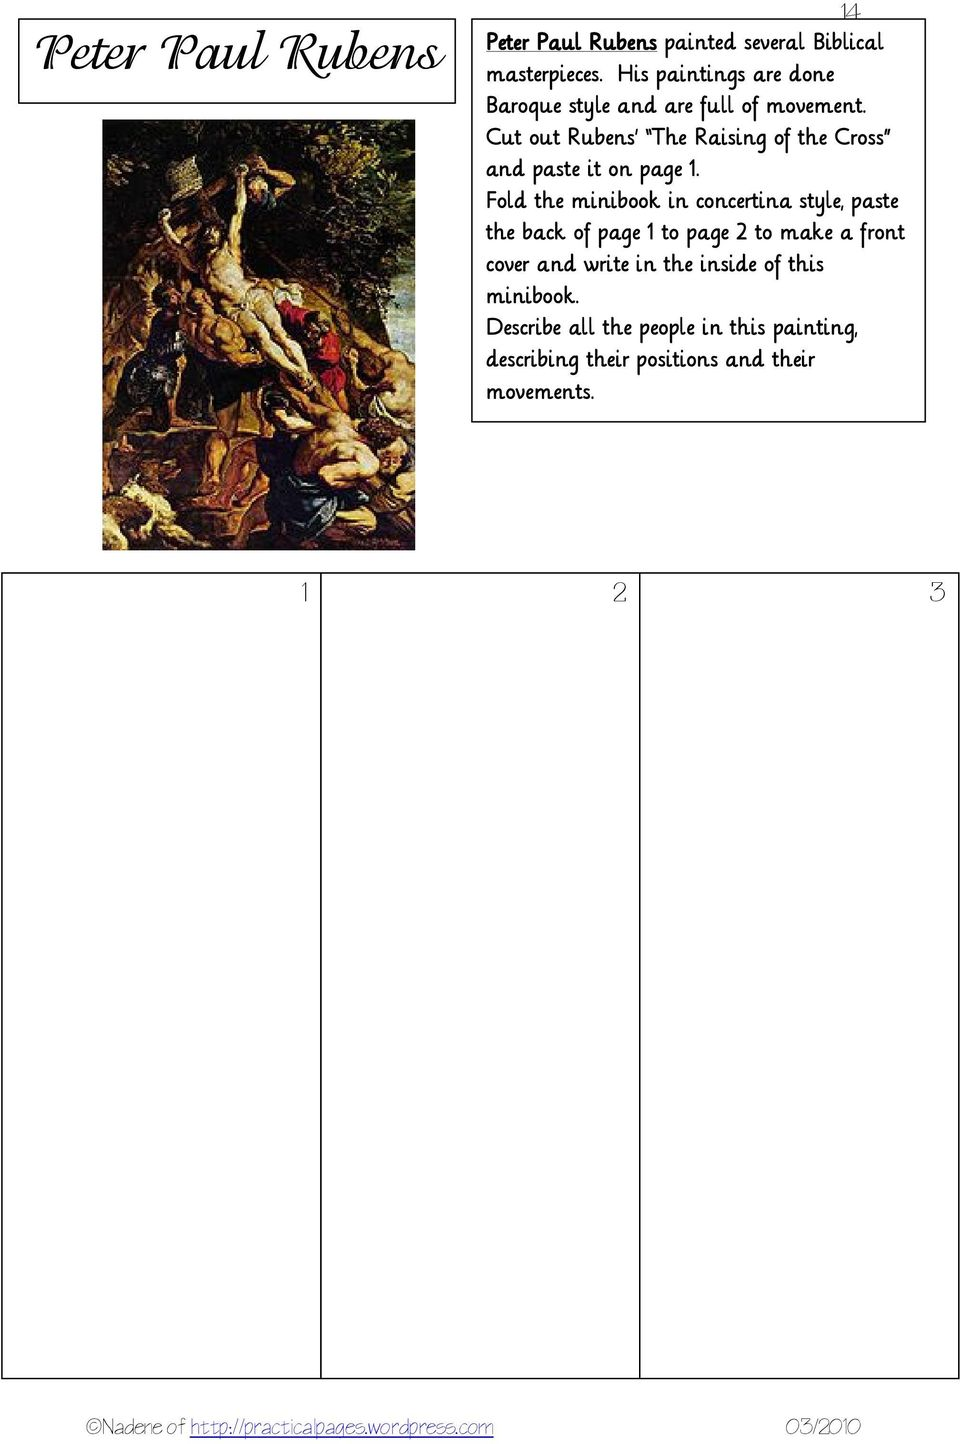 Cut out Rubens The Raising of the Cross and paste it on page 1.